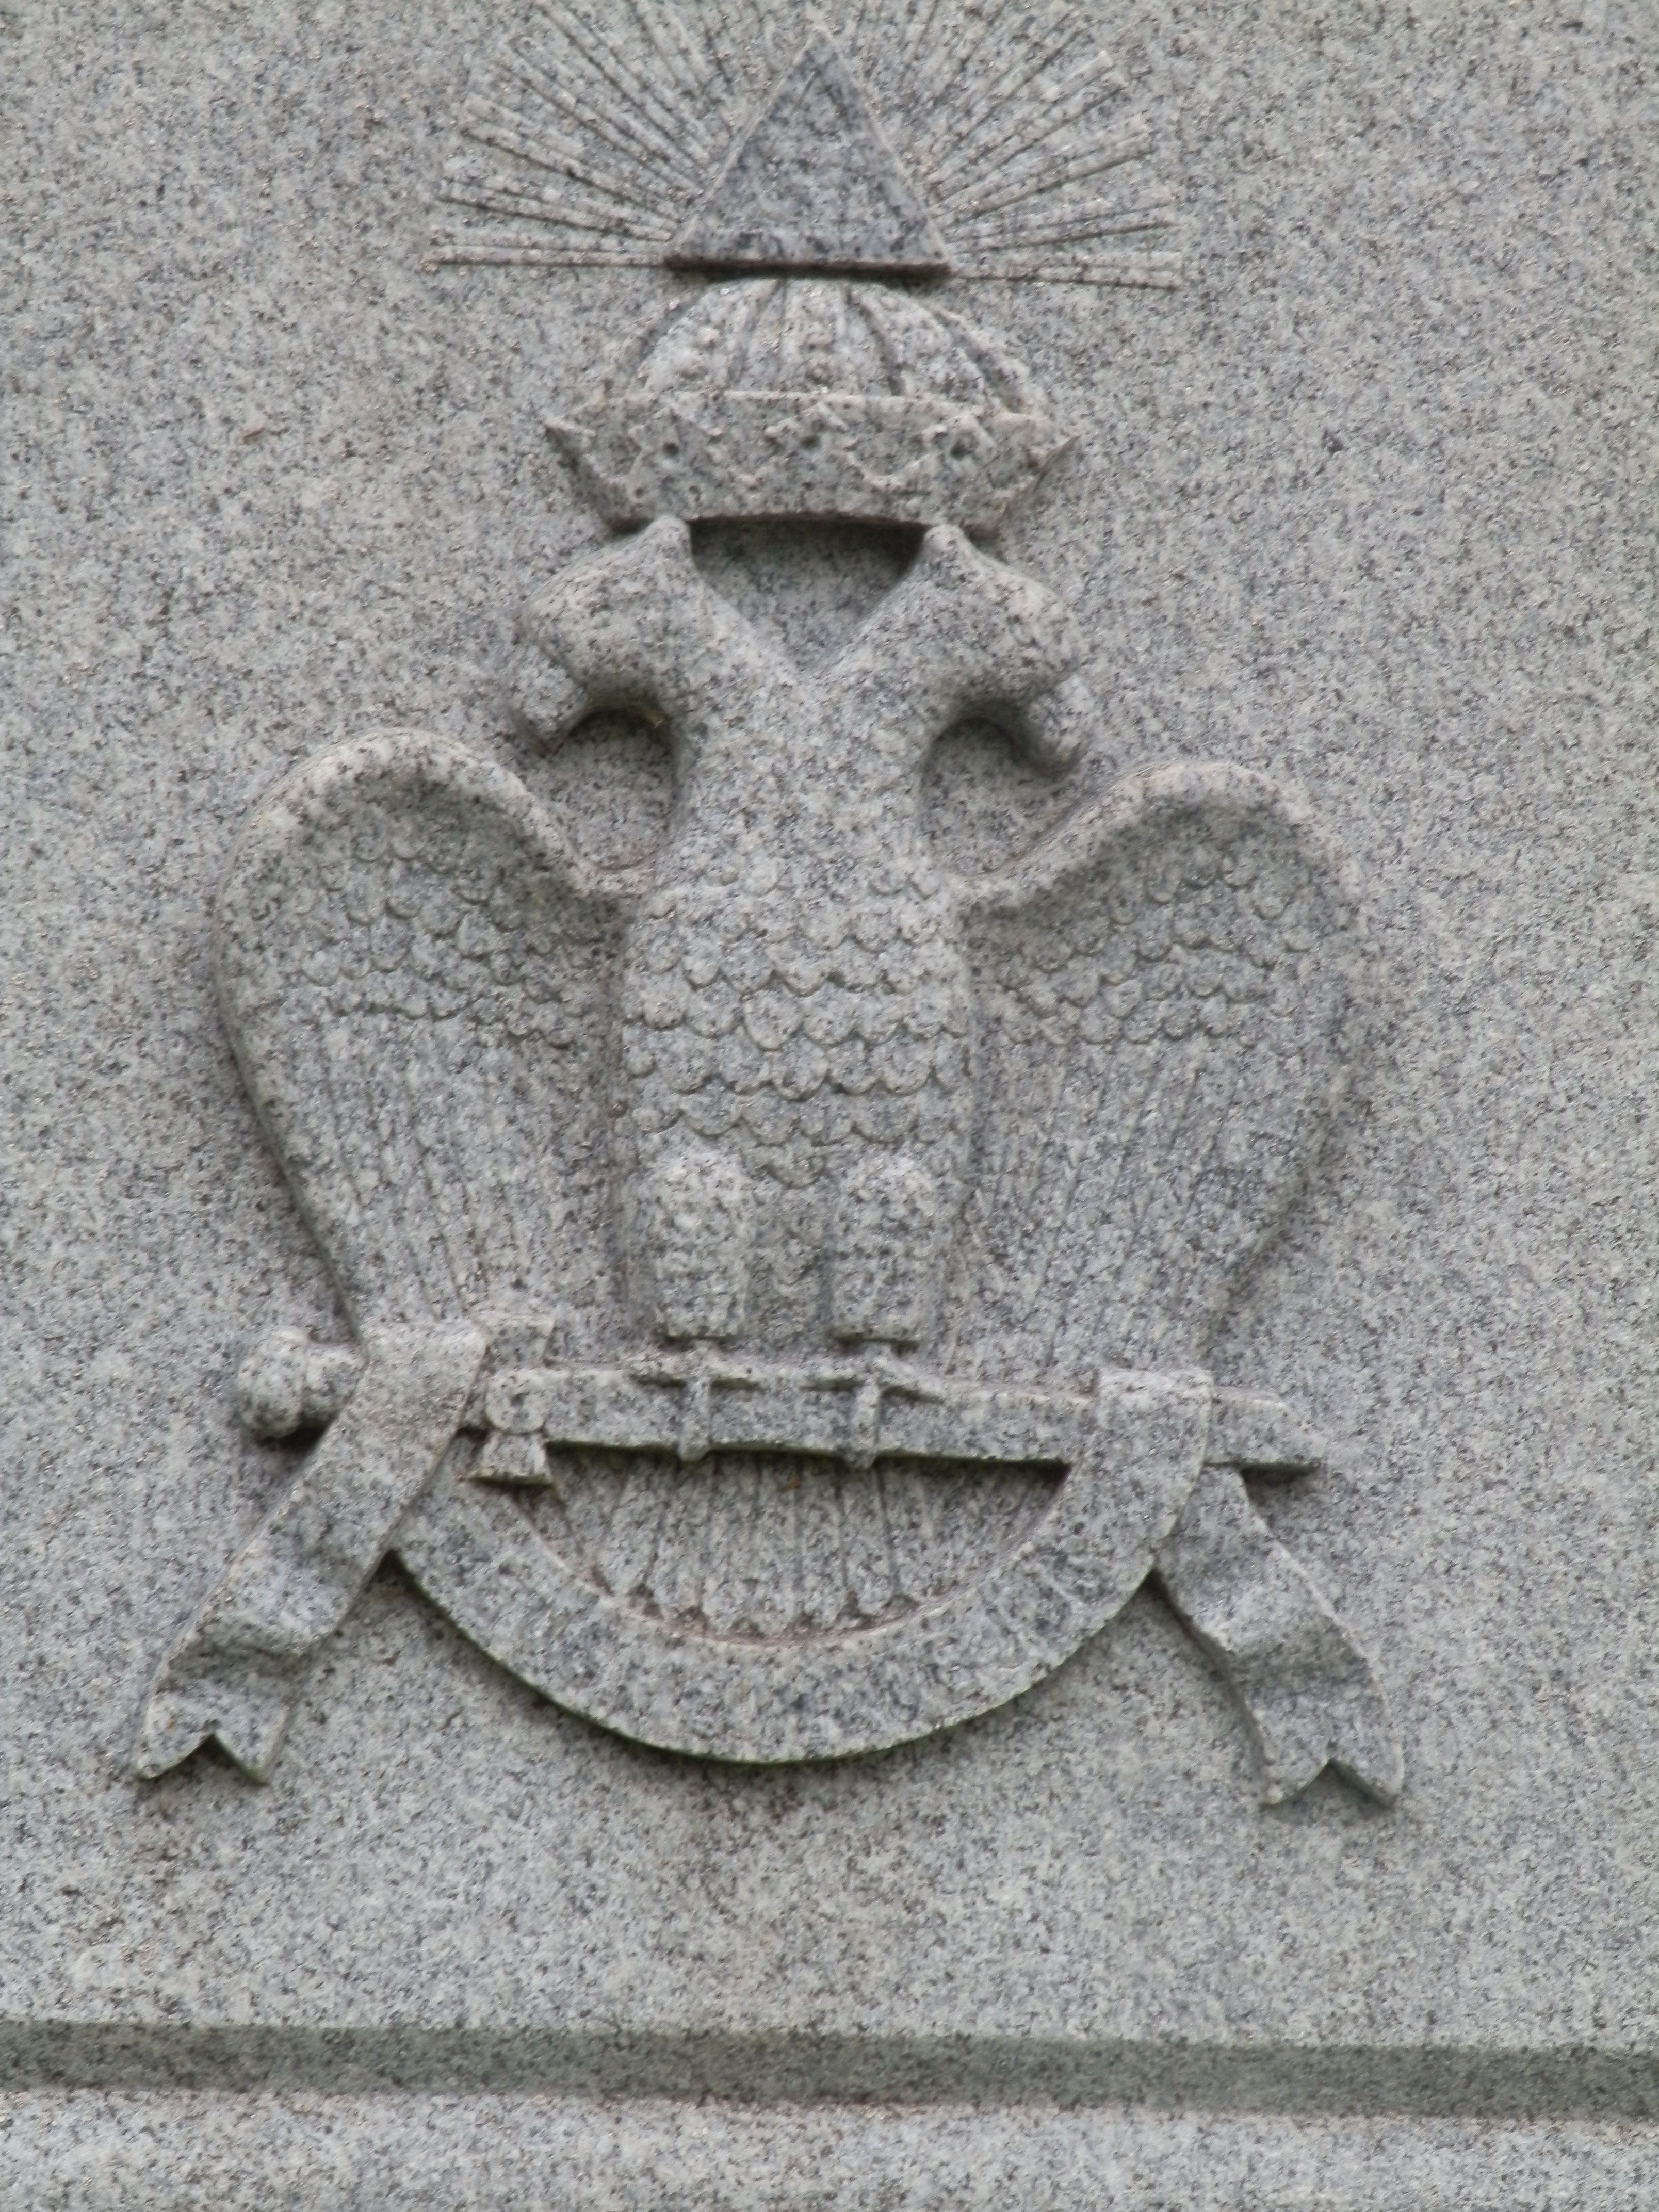 Double-headed eagle is a Masonic symbol, part of the 32nd